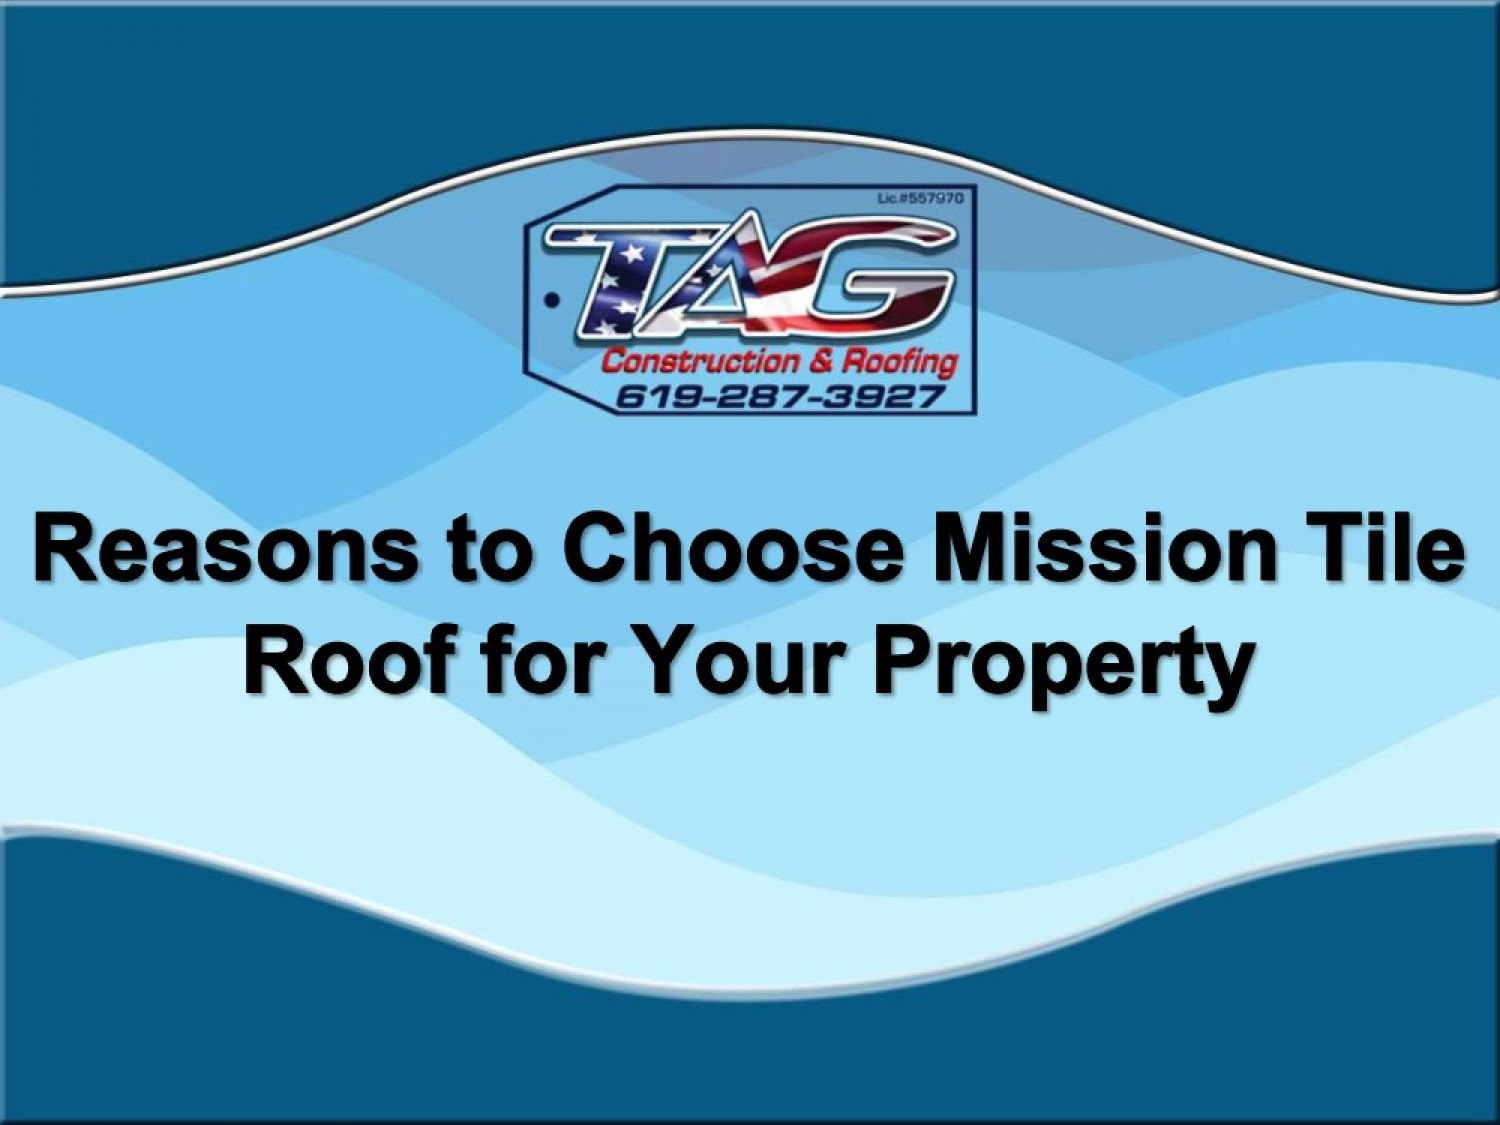 Reasons to Choose Mission Tile Roof for Your Property Infographic